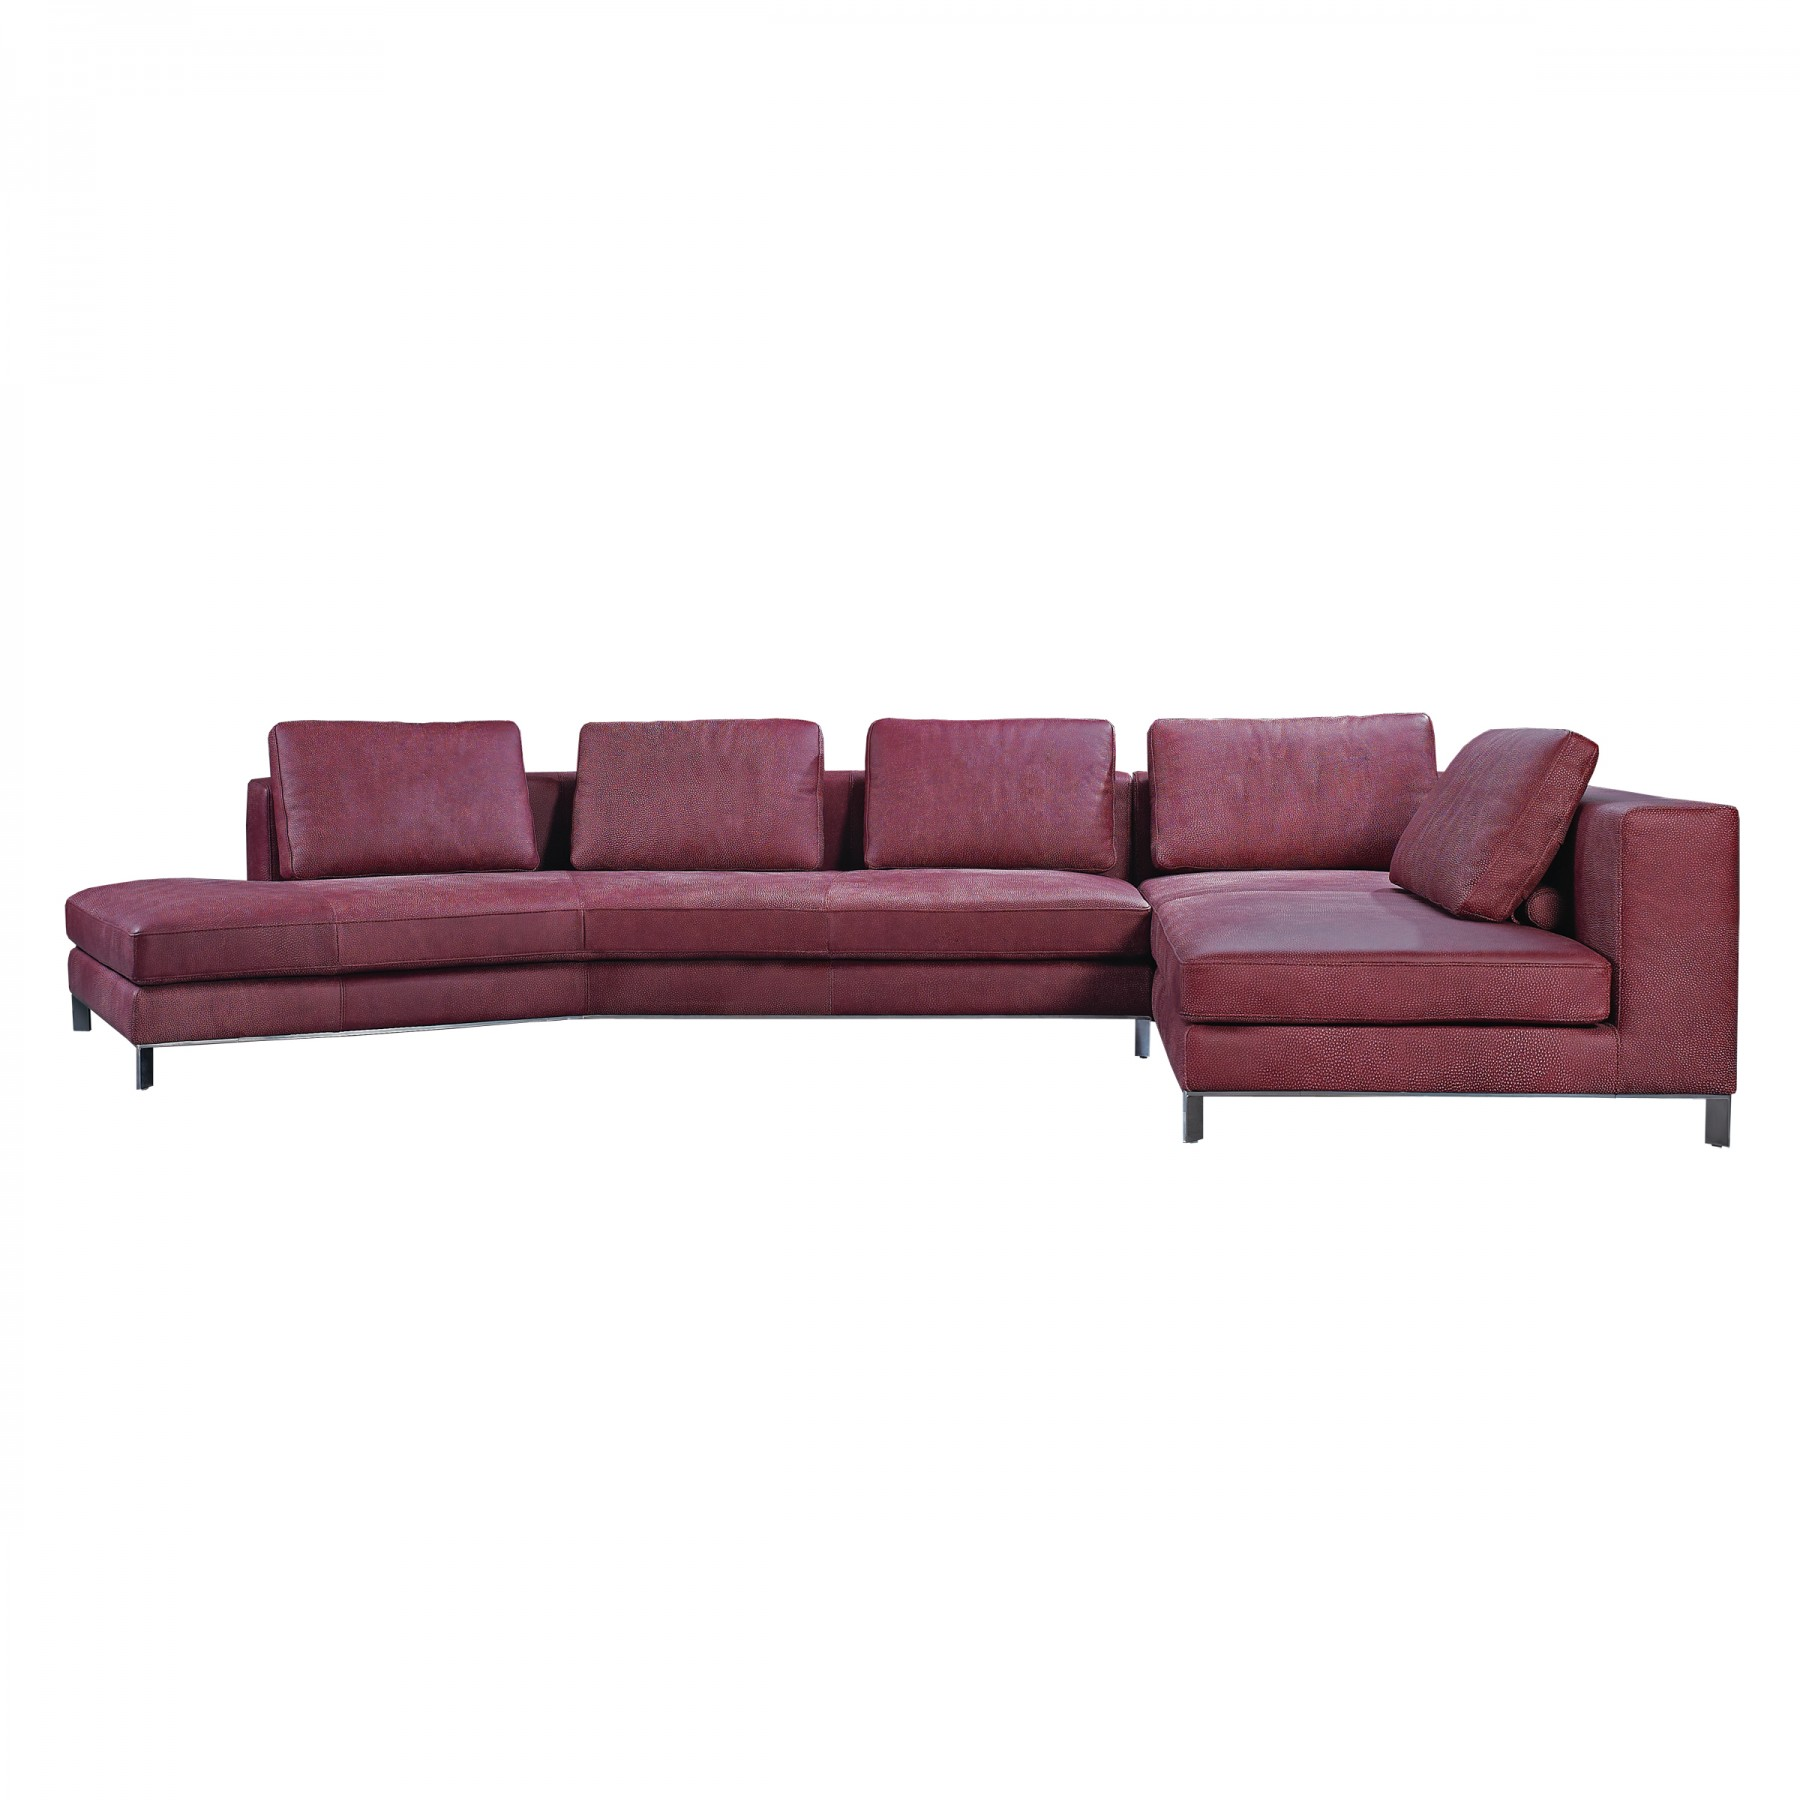 angled sectional sofa loveseat chair covers liberta corner beyond furniture